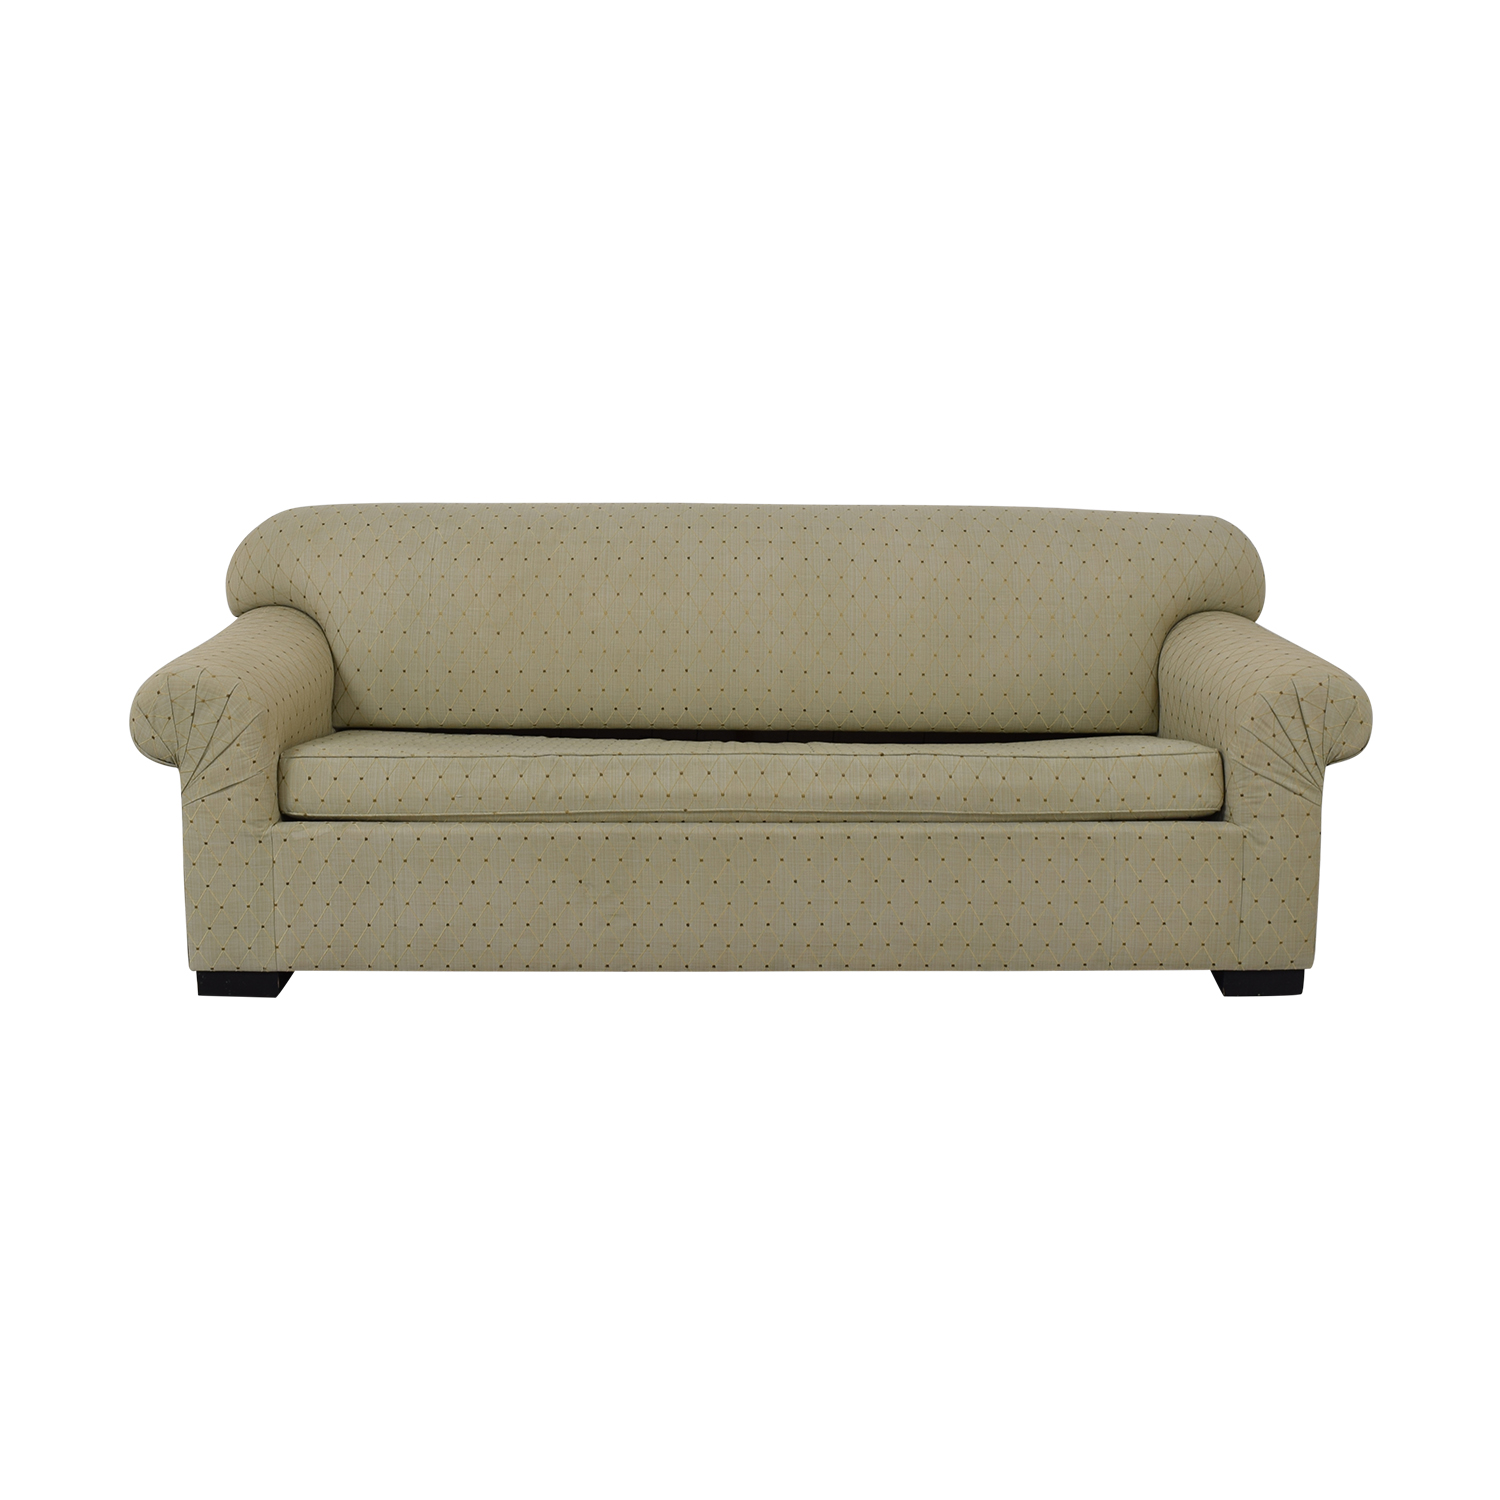 Carlyle Carlyle Queen Pull Out Sofa Bed on sale